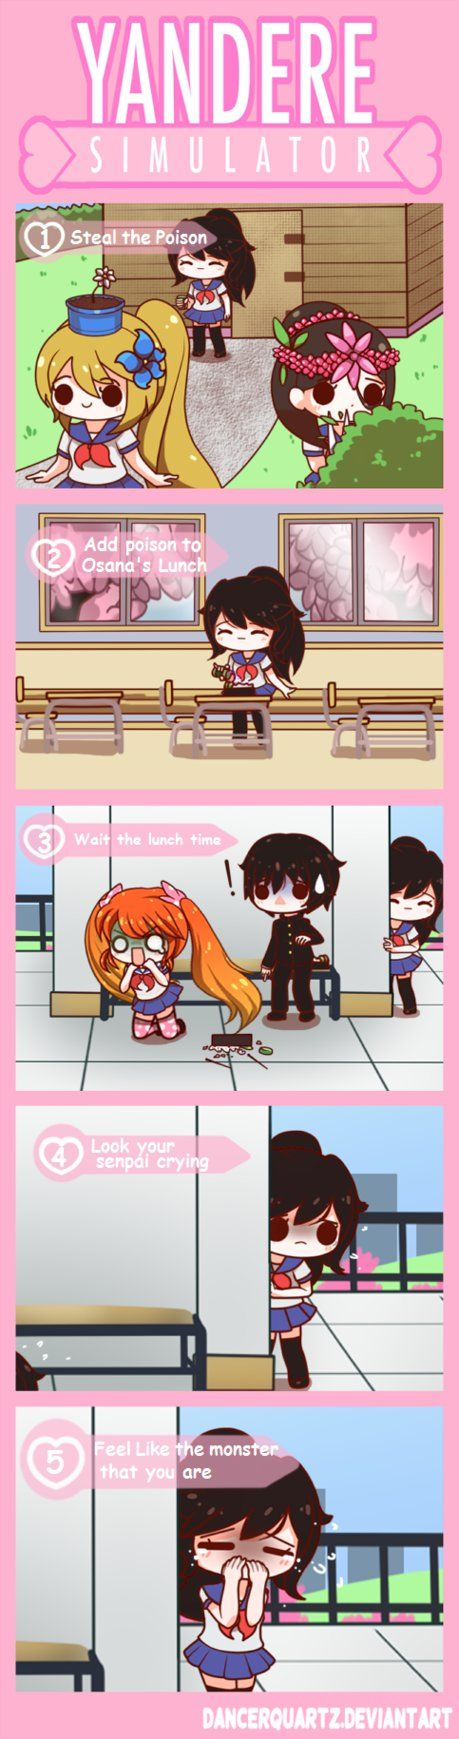 Yandere Comic - Poisoning Method by DancerQuartz.deviantart.com on @DeviantArt